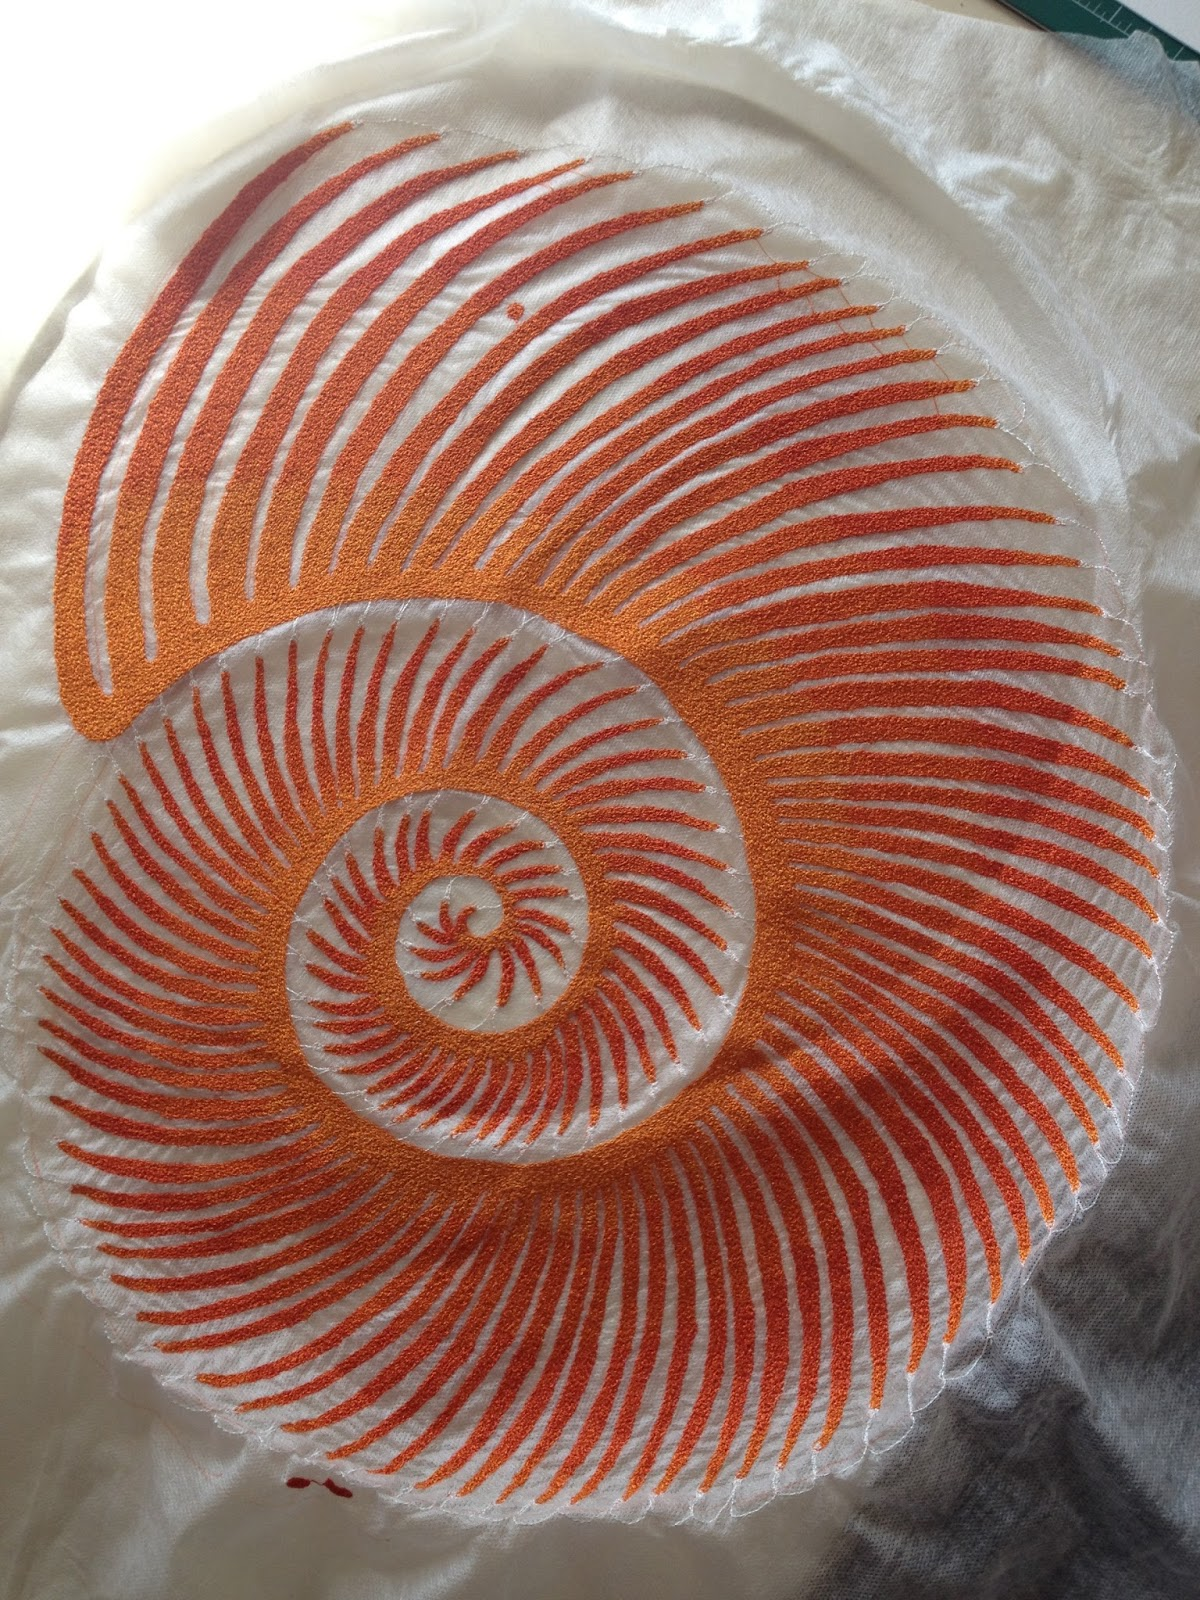 The Spiral Step Using A New Tarot Deck: The Artwork Of Meredith Woolnough: Sea Spiral